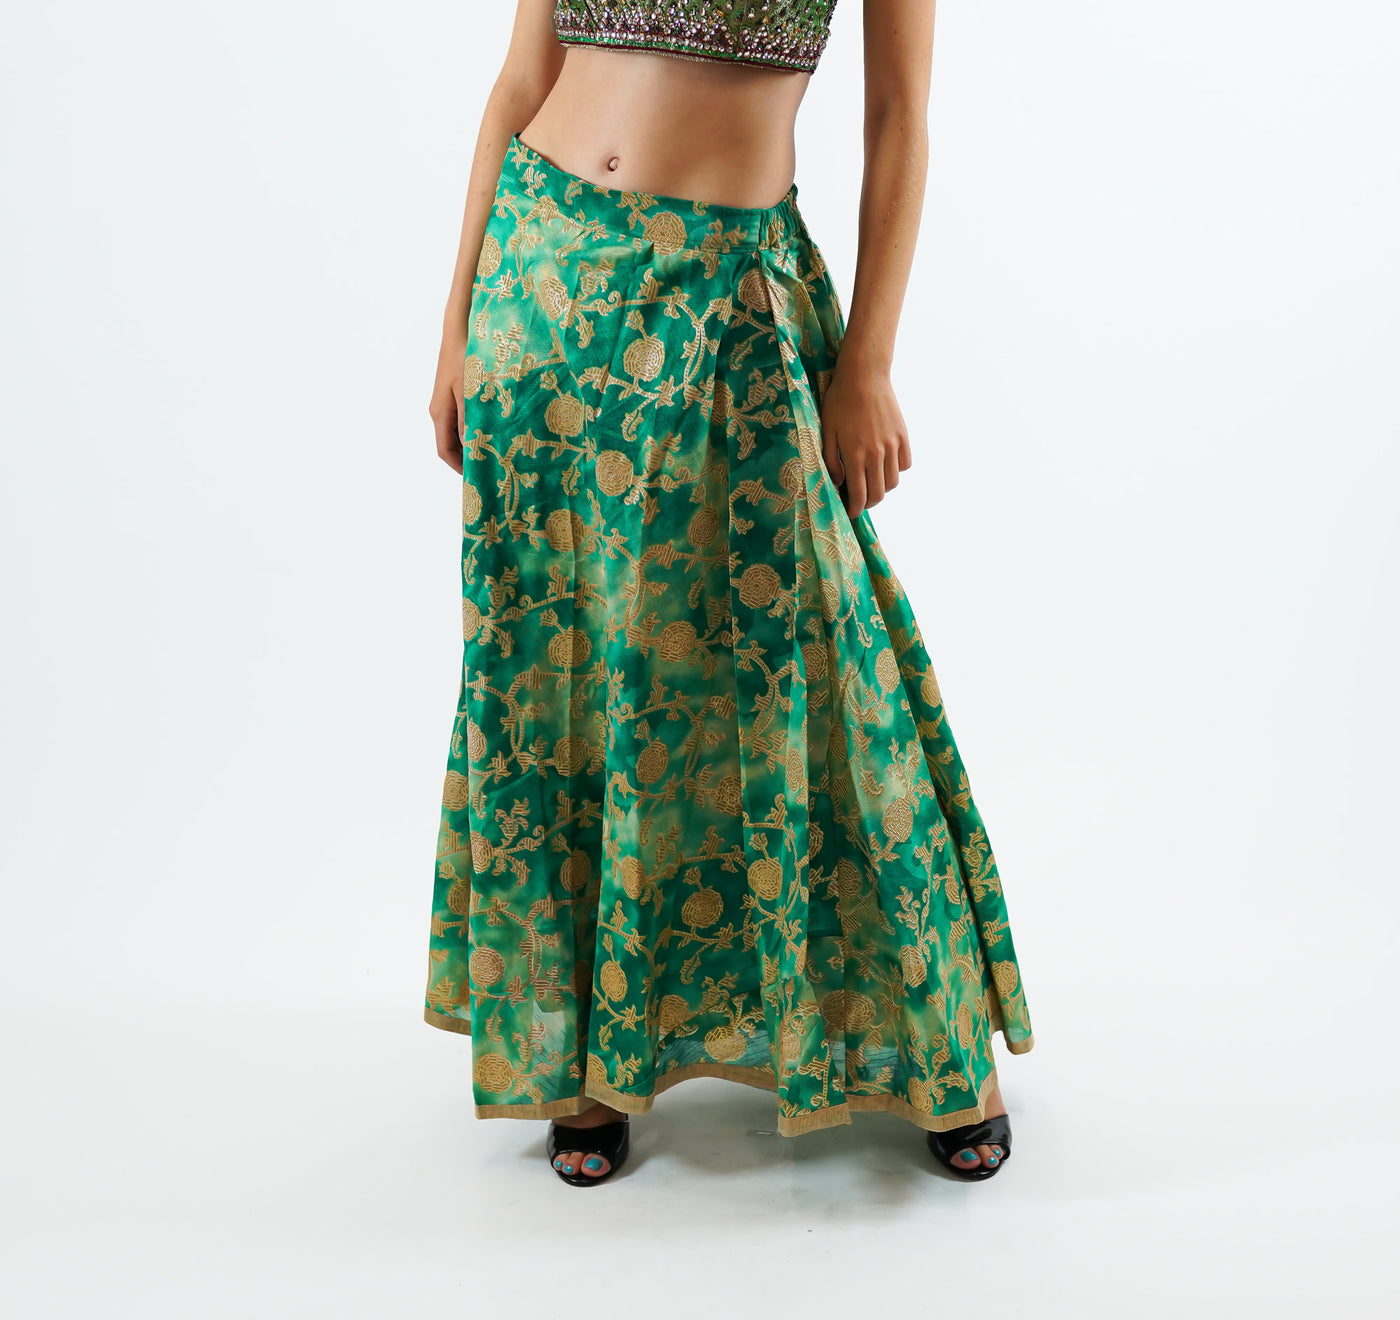 Green and Gold Skirt